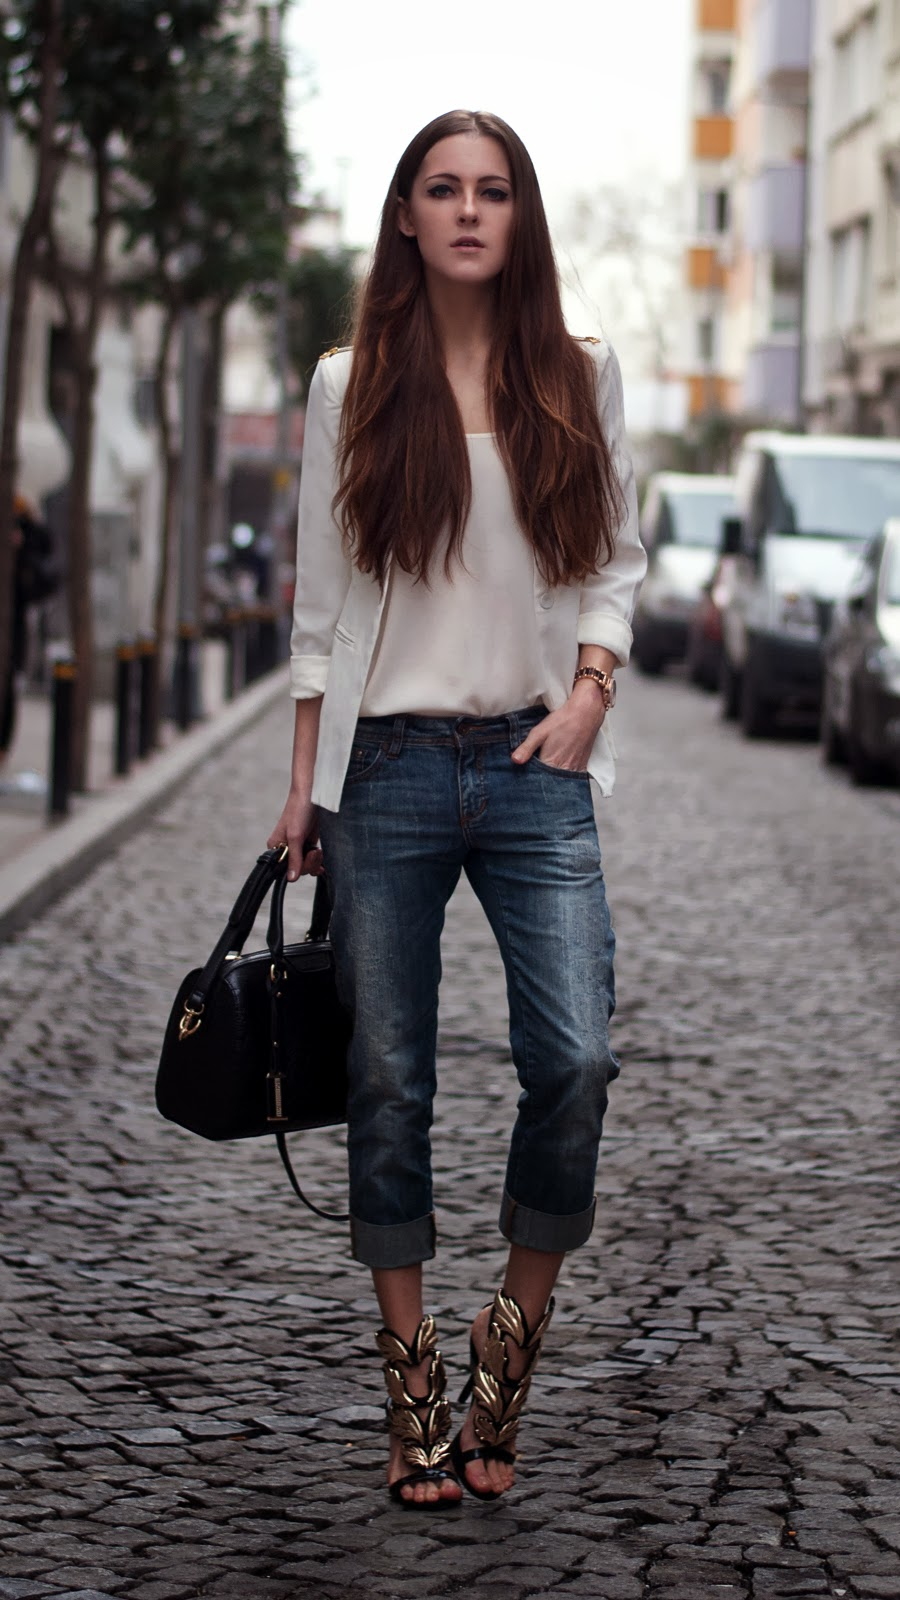 streetstyle, fashionblogger, blazer outfit, oasap heels, diesel jeans, fashion details, michael kors, lookbook, longhair, istanbul street style